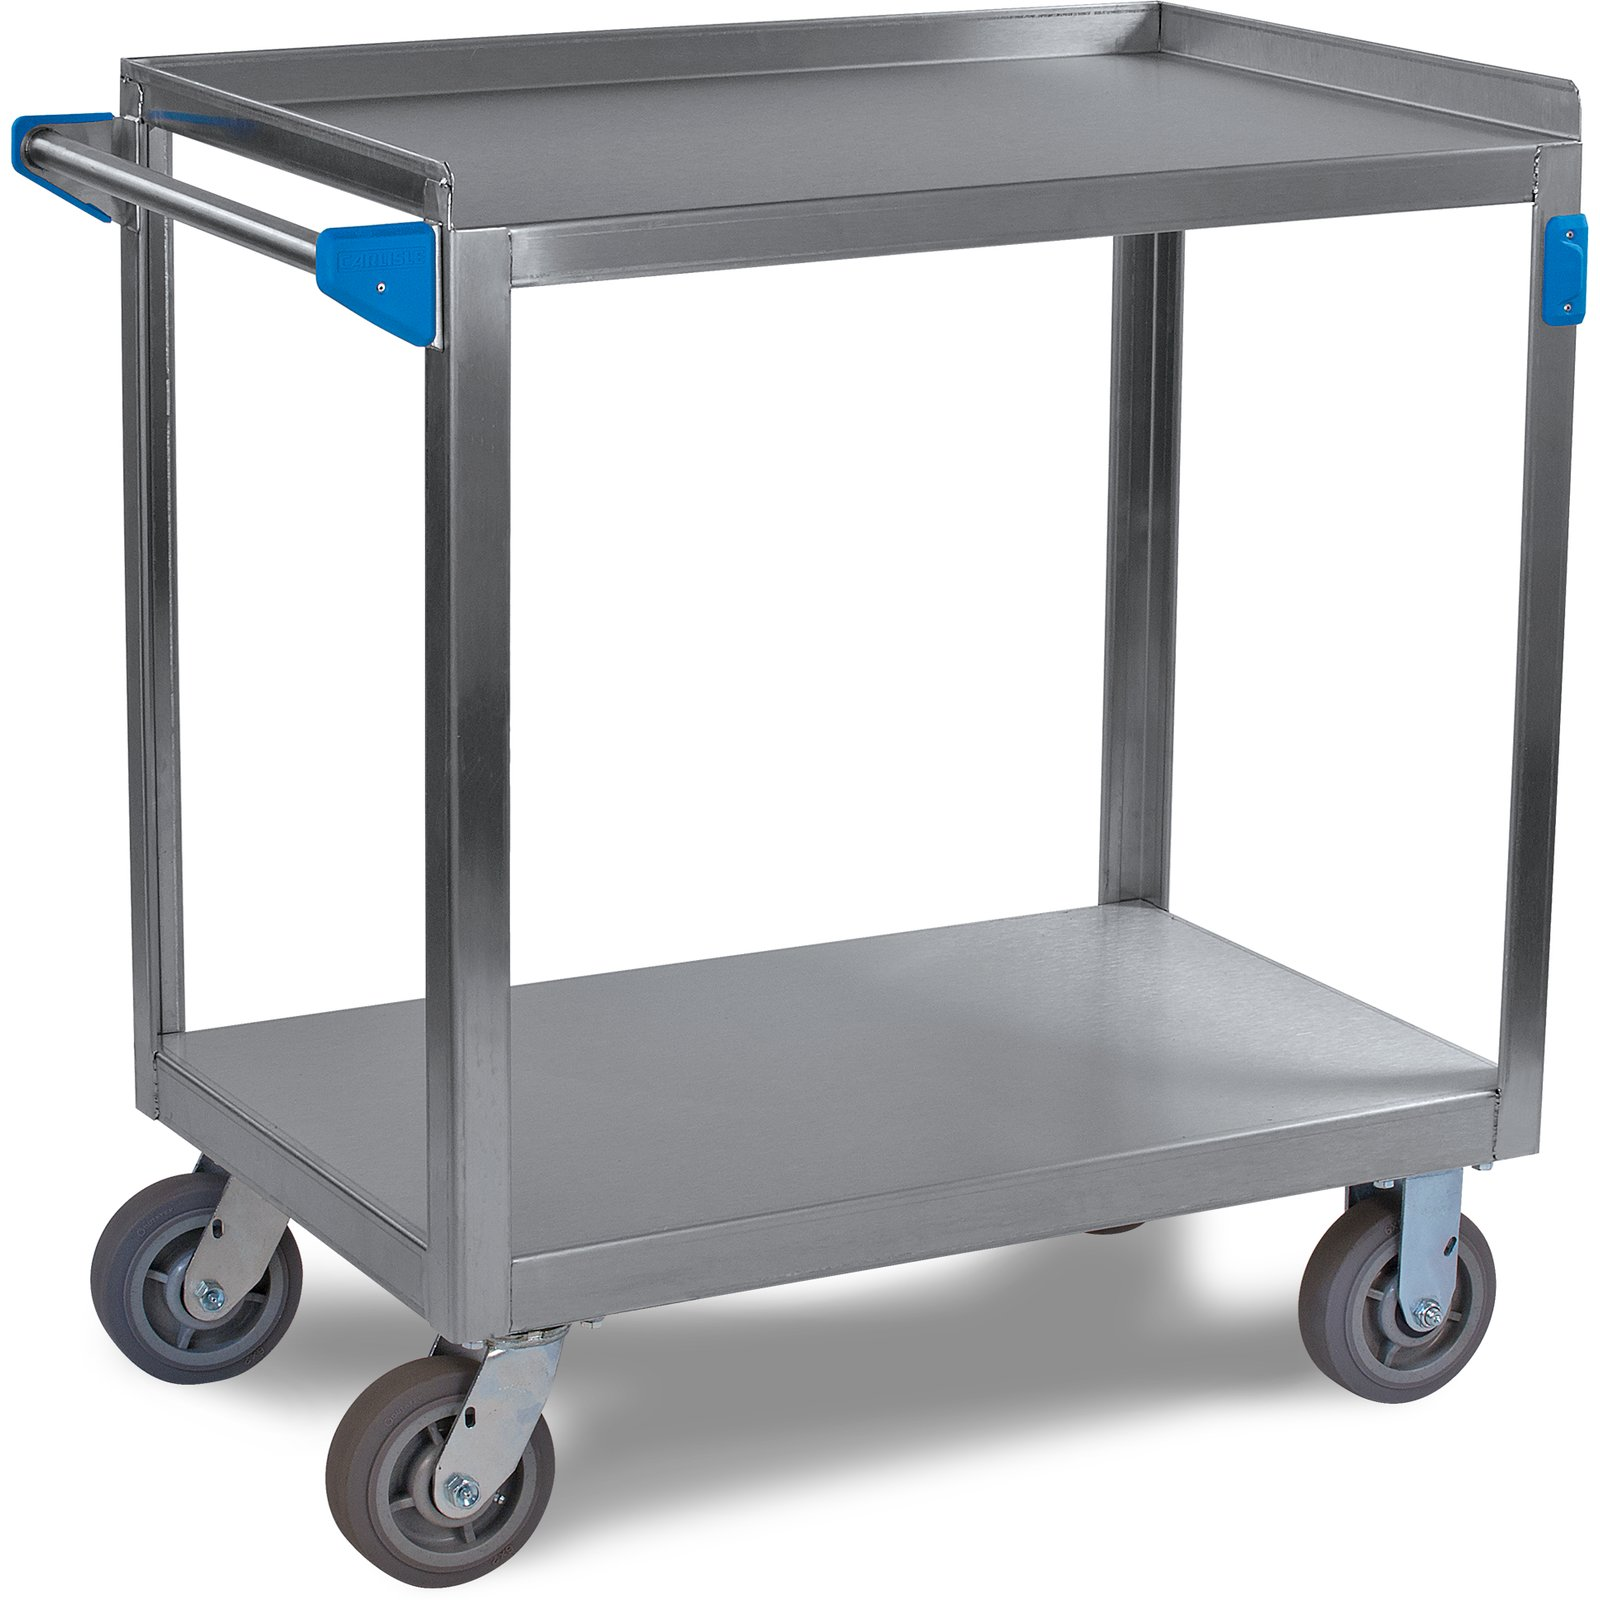 Uc7022133 Stainless Steel 2 Shelf Utility Cart 21 X 33 Stainless Steel Carlisle Foodservice Products